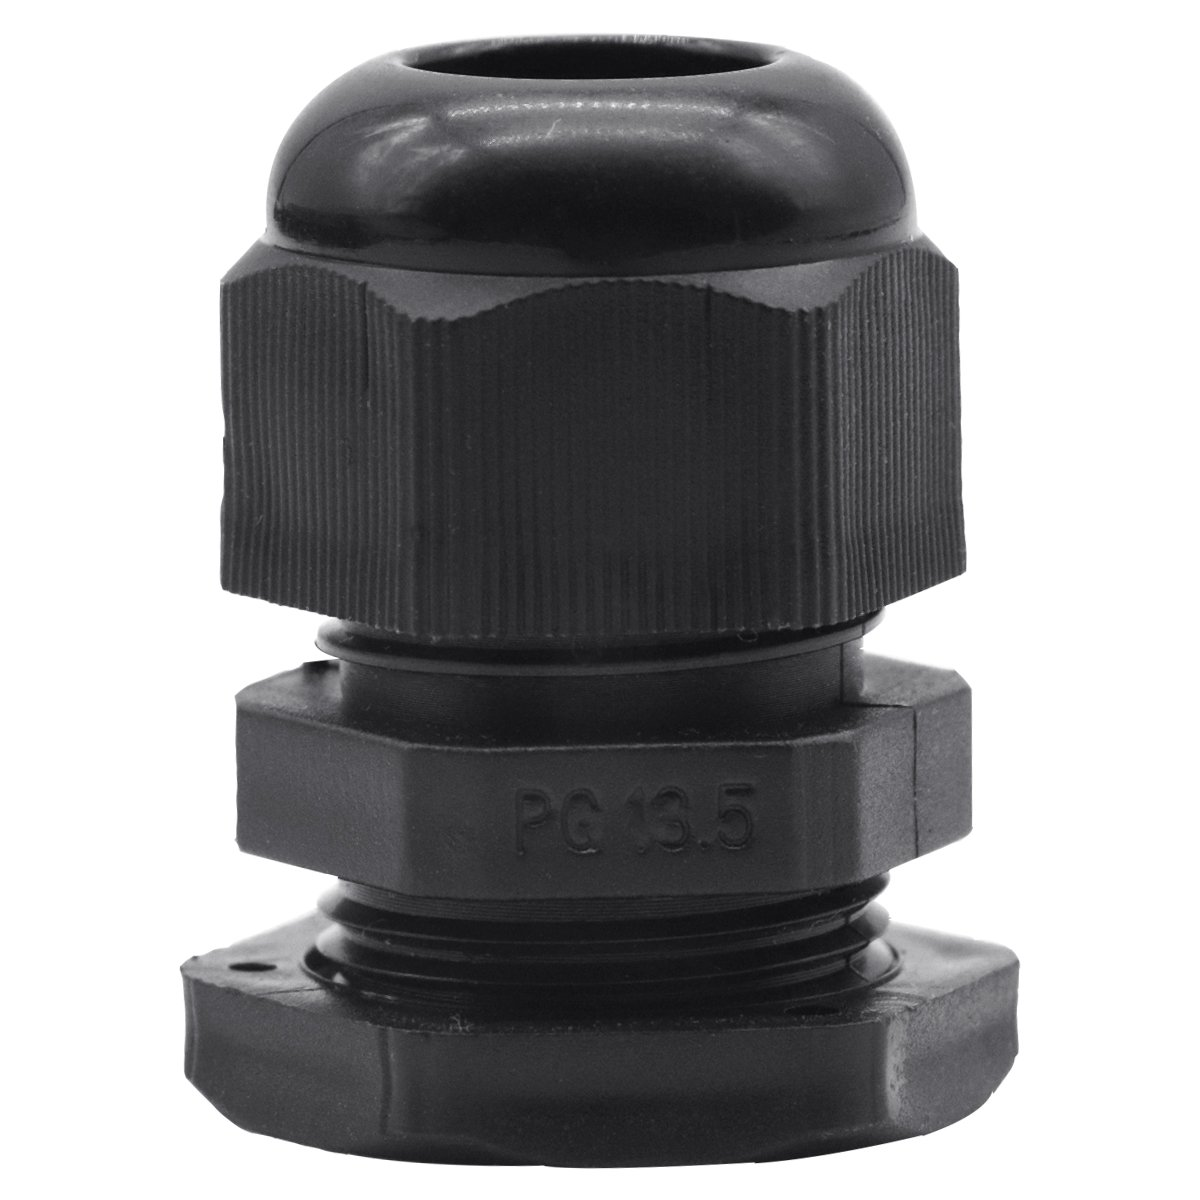 Lantee PG 13.5 Cable Gland - 20 Pieces Black Plastic Nylon Waterproof Wire Glands Connector Fitting Fit for 6mm to 12mm Cable Range